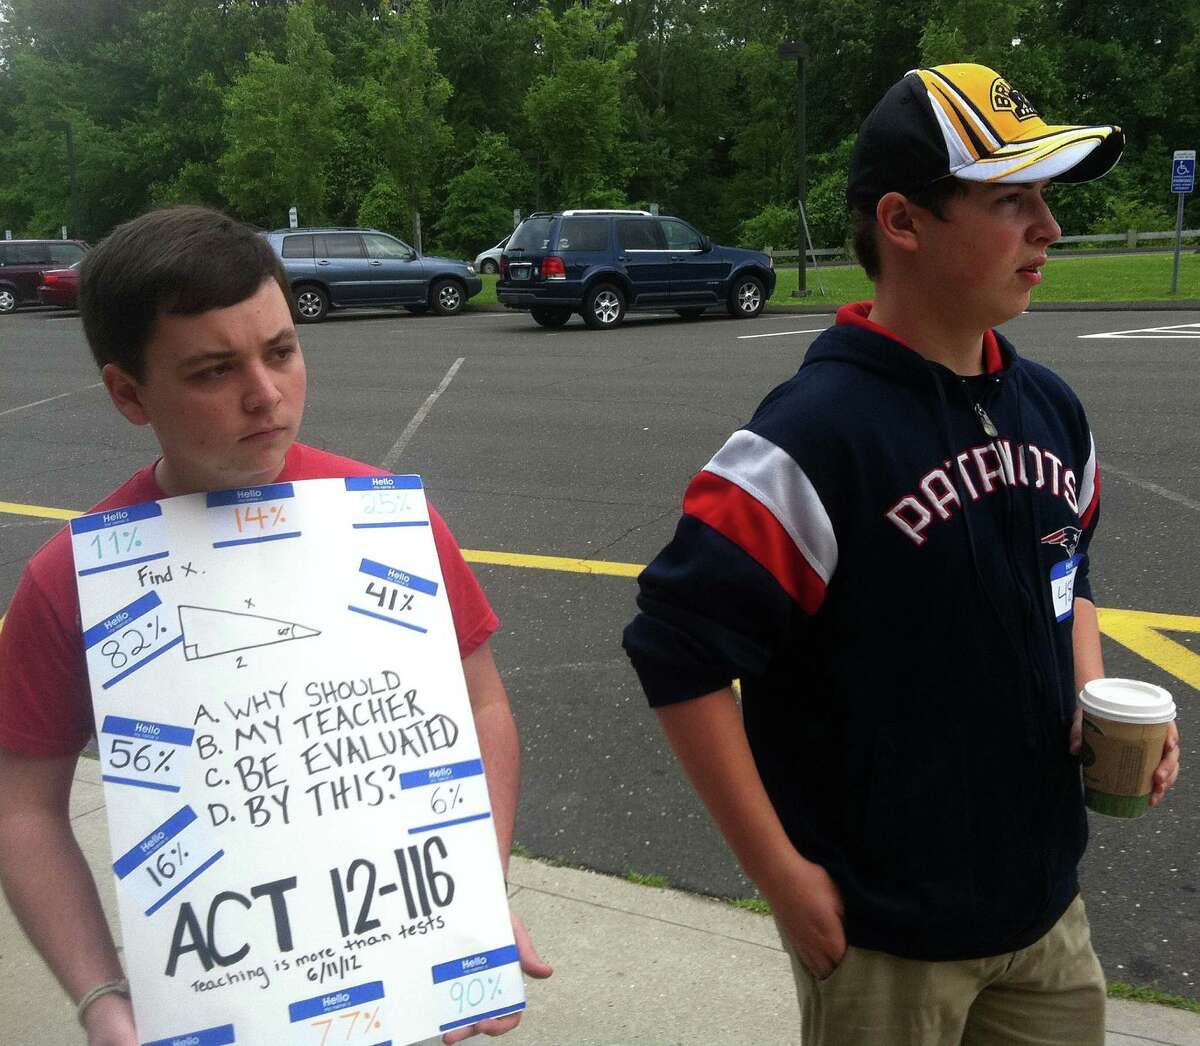 Staples High School juniors Ryan Shea, left, and Jacob Meisel participate in a protest outside the front entrance of the school related to teacher evaluation criteria in Connecticut's new education reform law. Monday, June 11, 2012/ Westport, CT